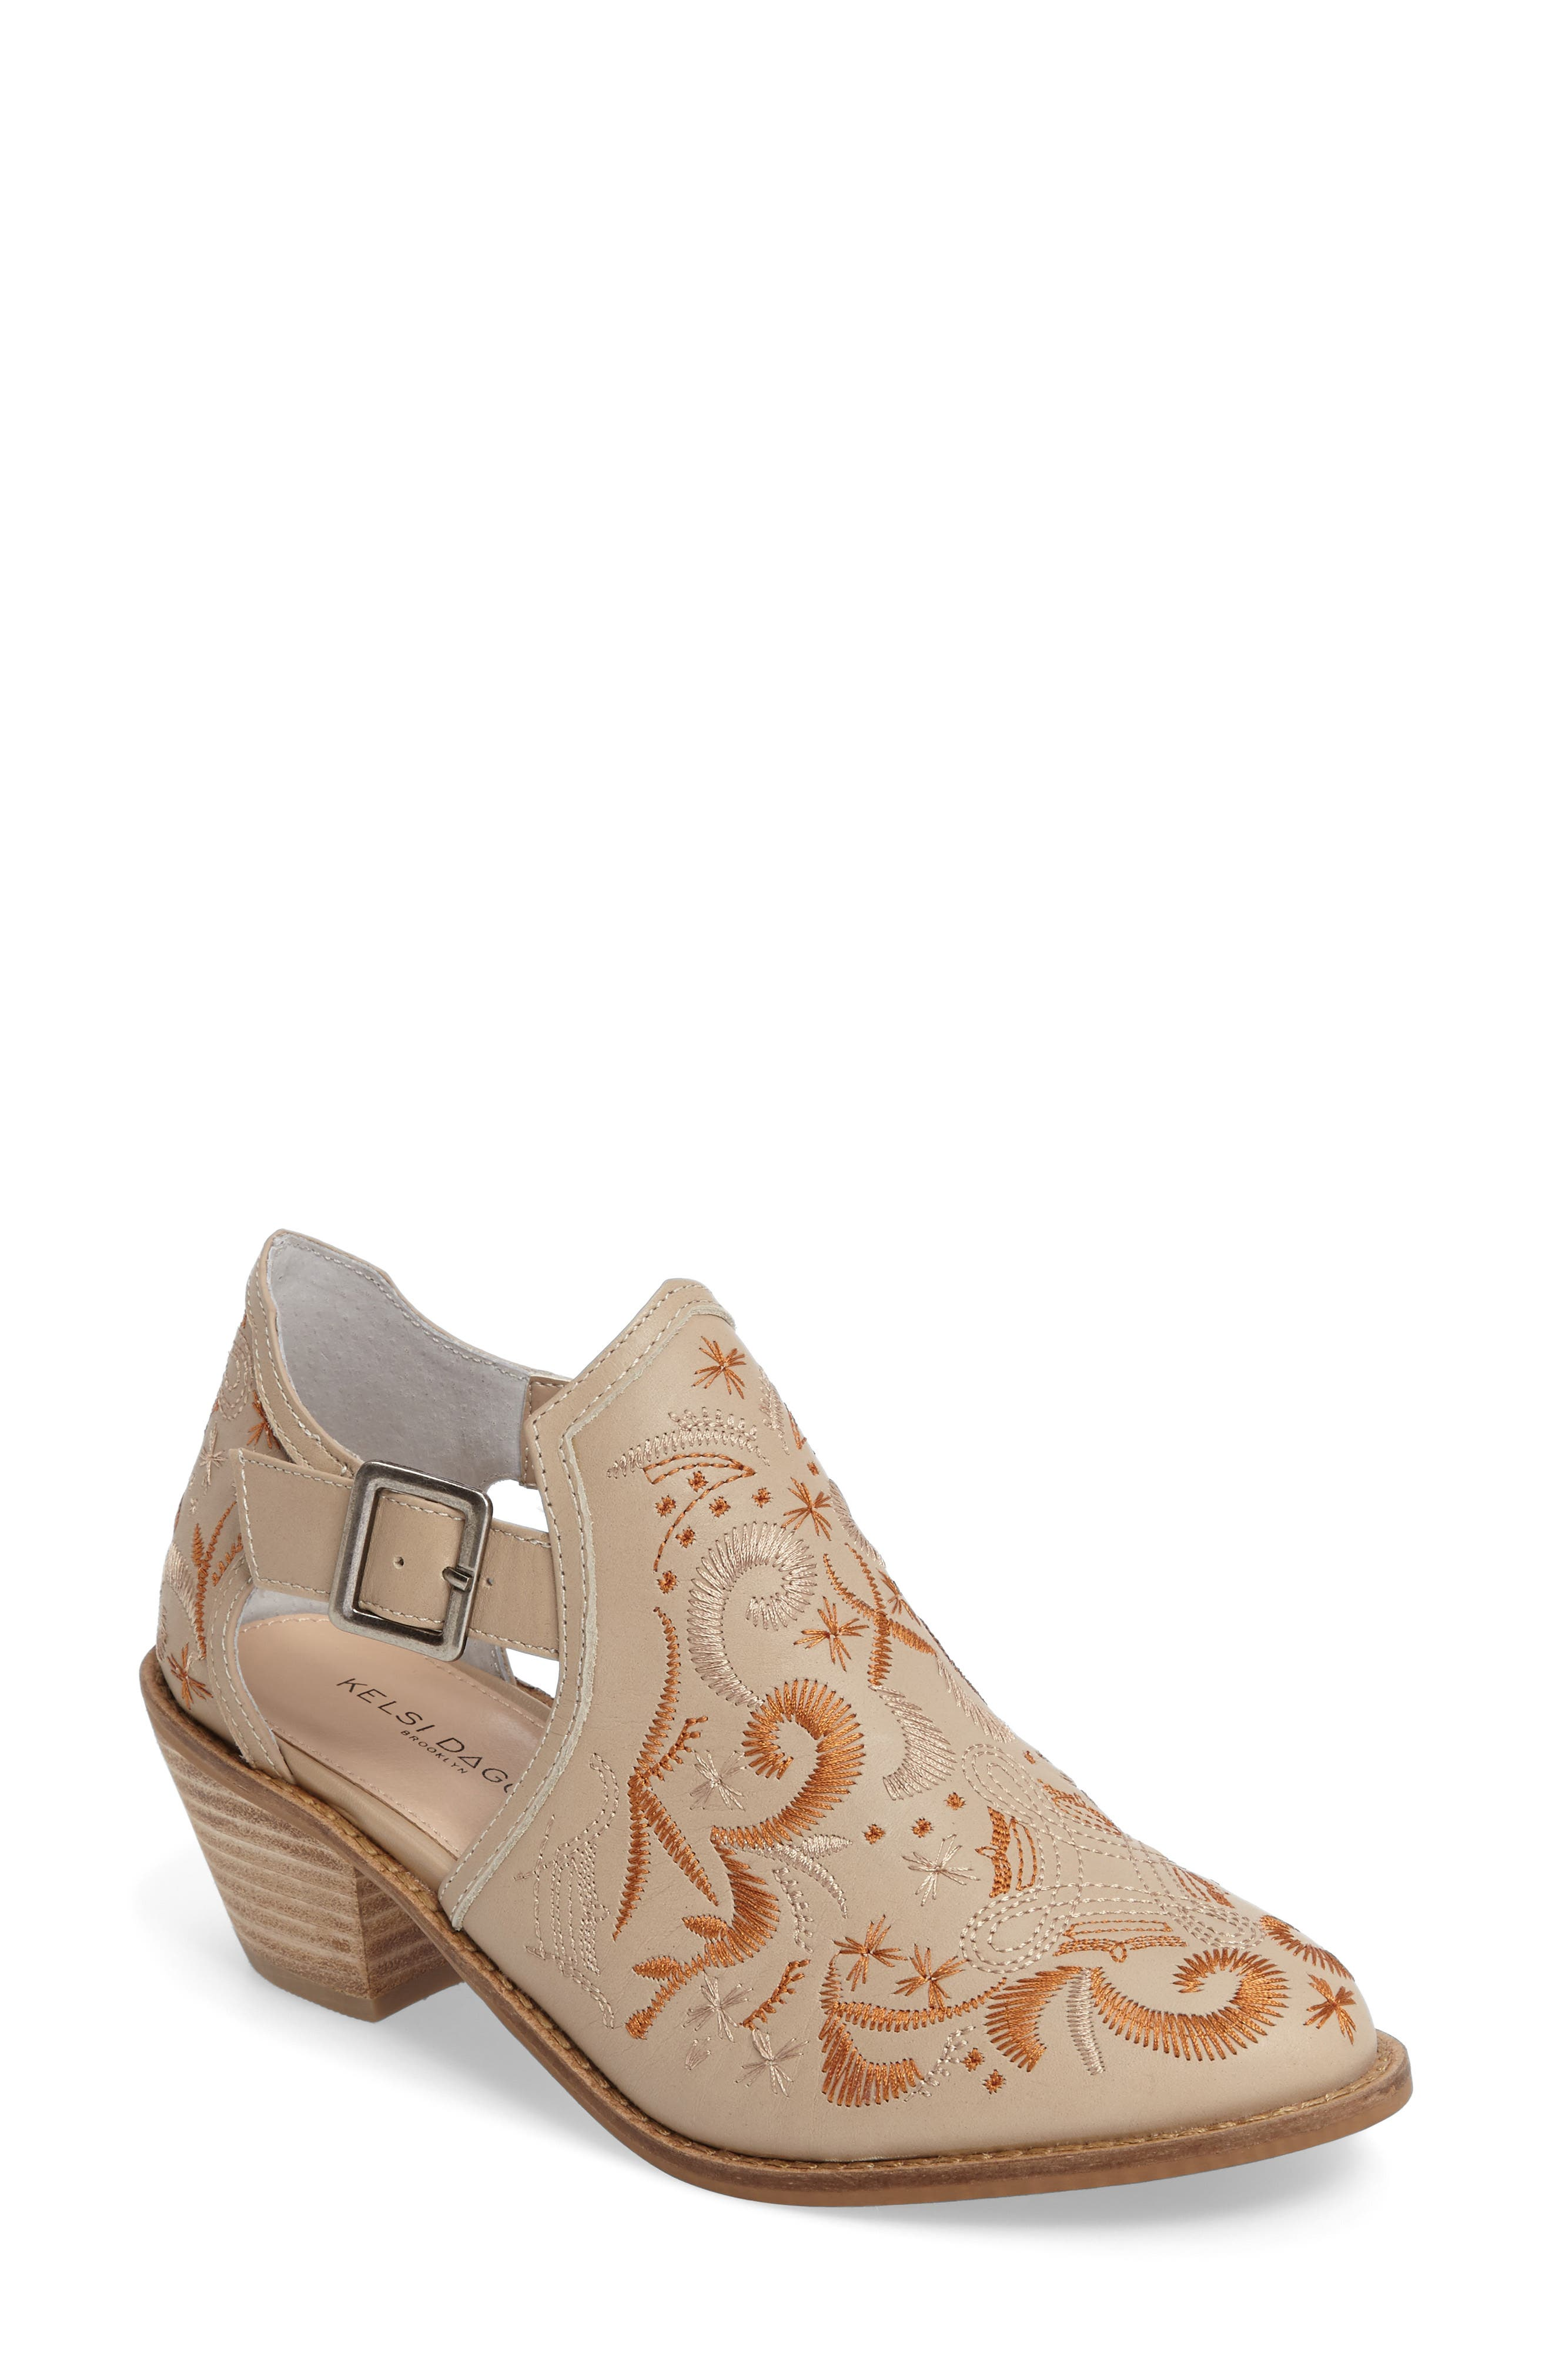 Kline Embroidered Bootie,                             Main thumbnail 1, color,                             Wheat Leather